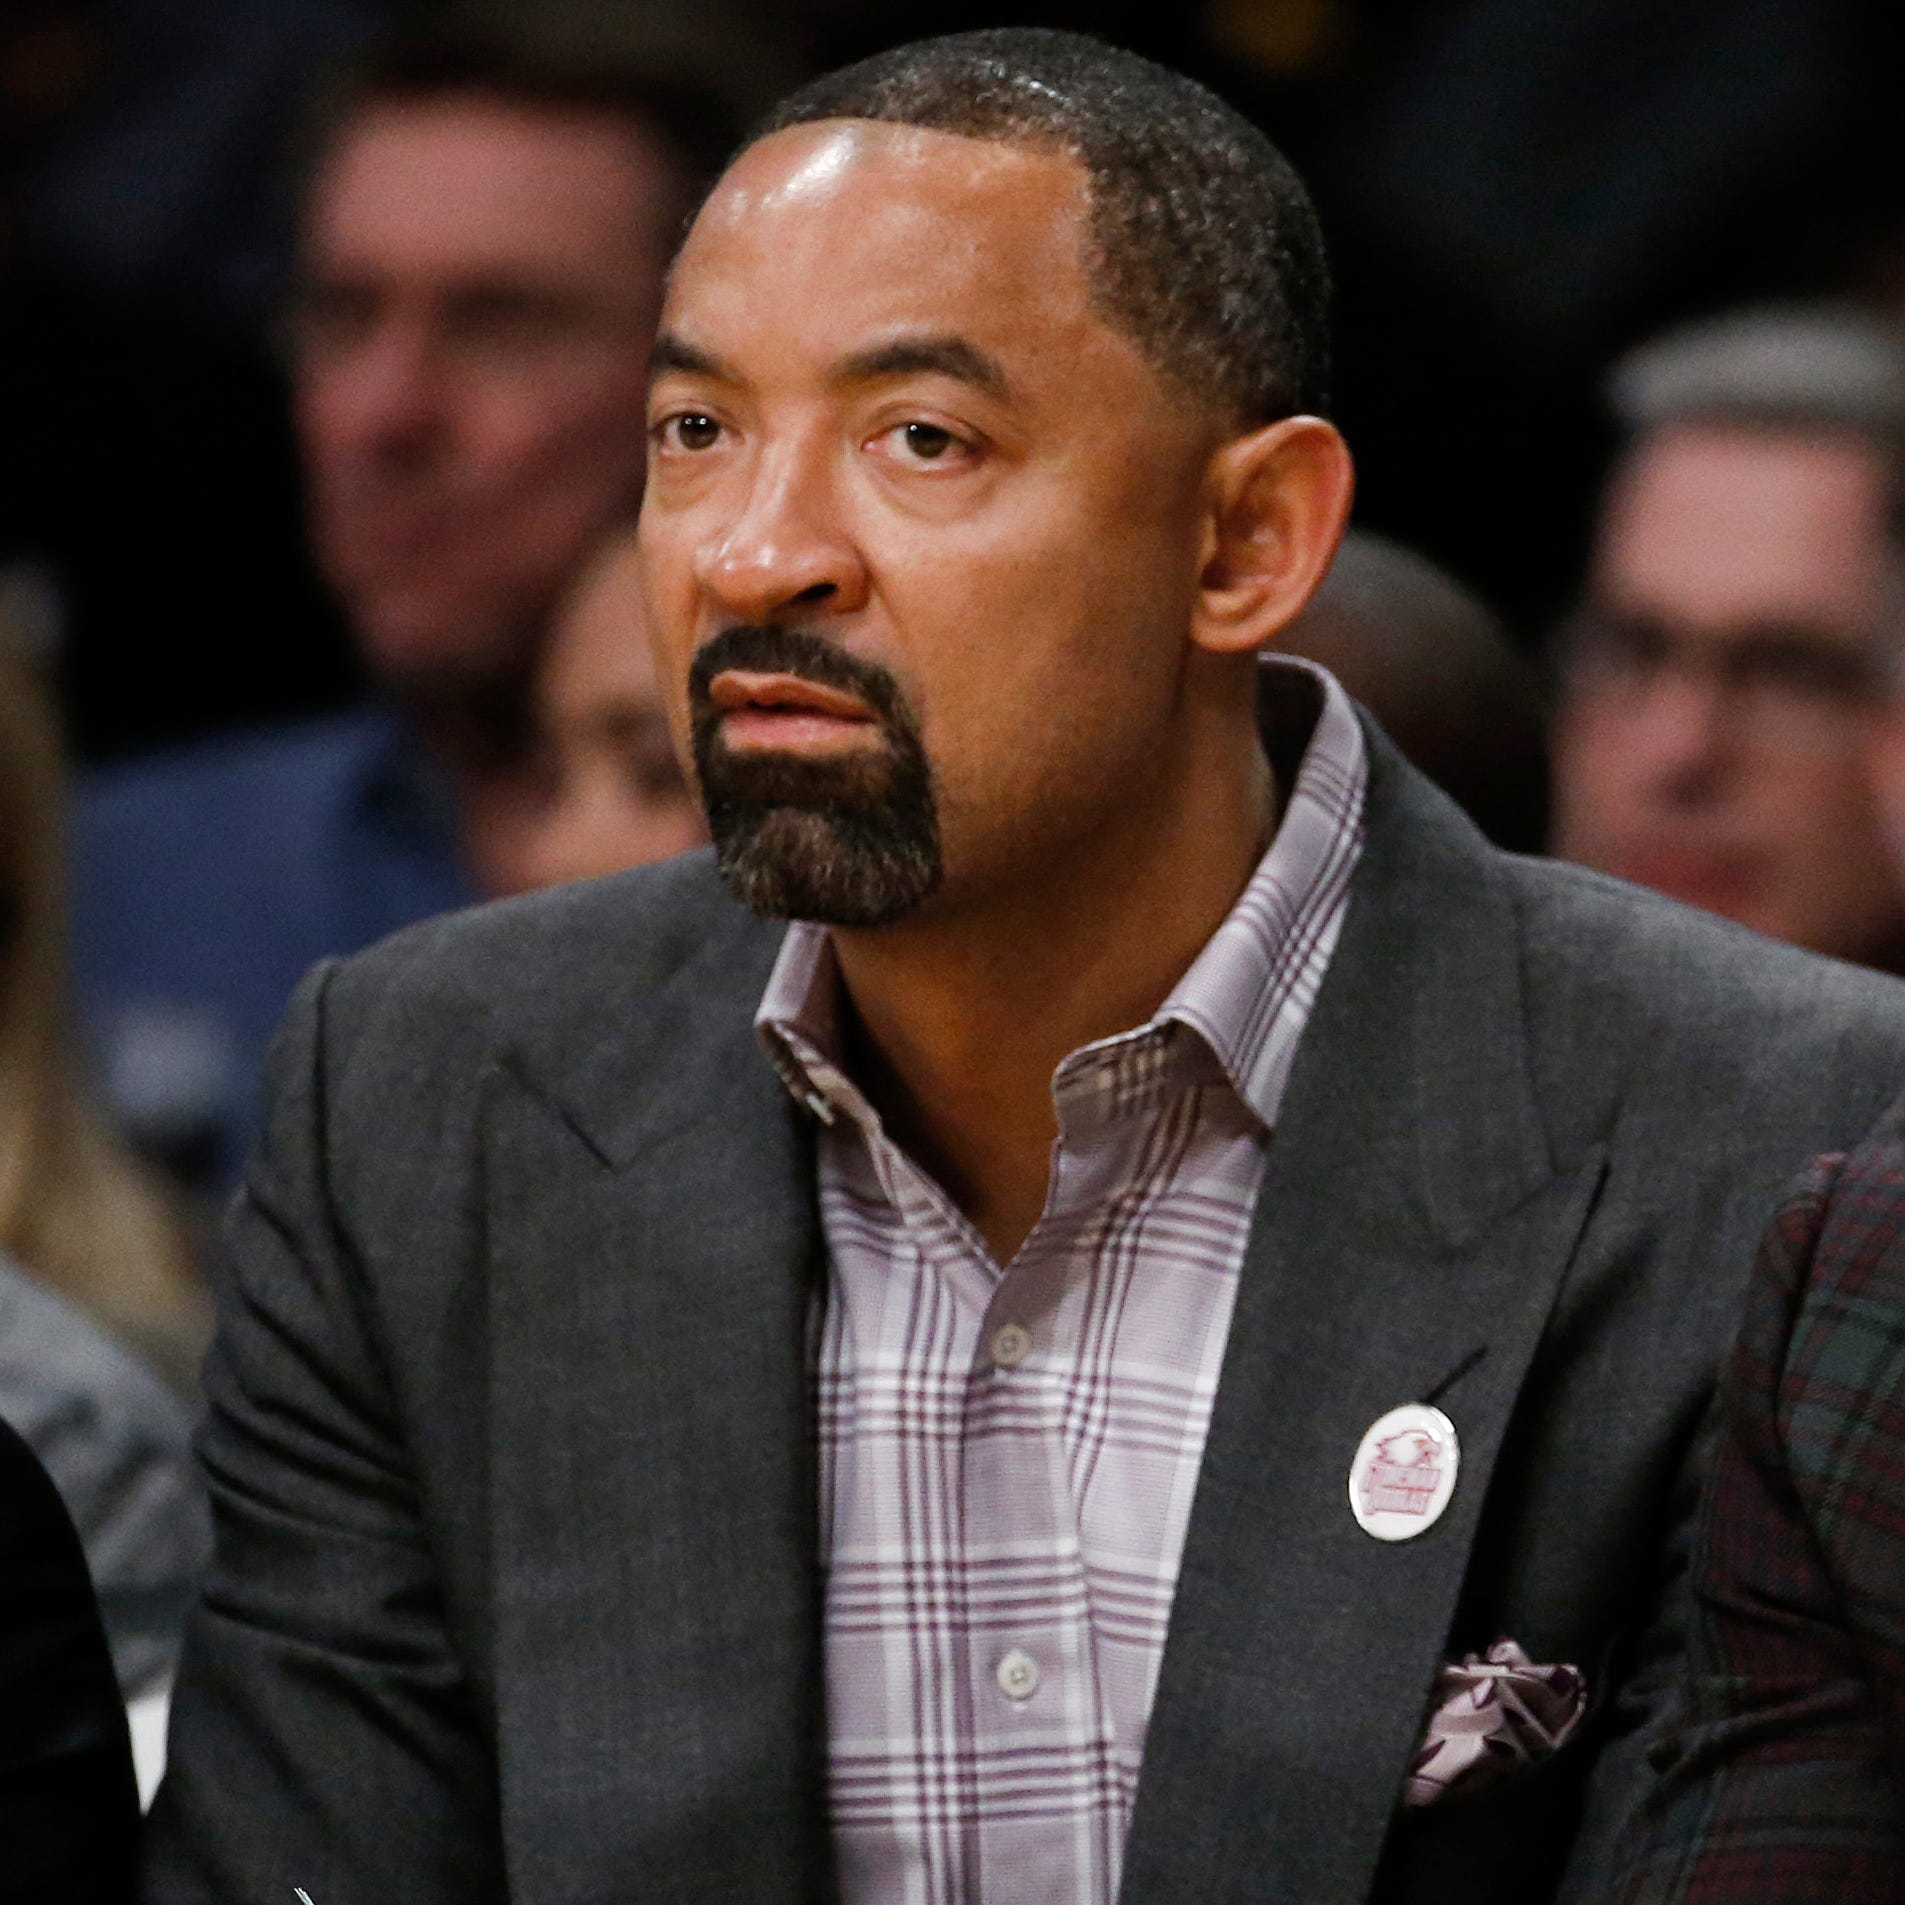 Michigan basketball to hire Juwan Howard: Here's what you should know